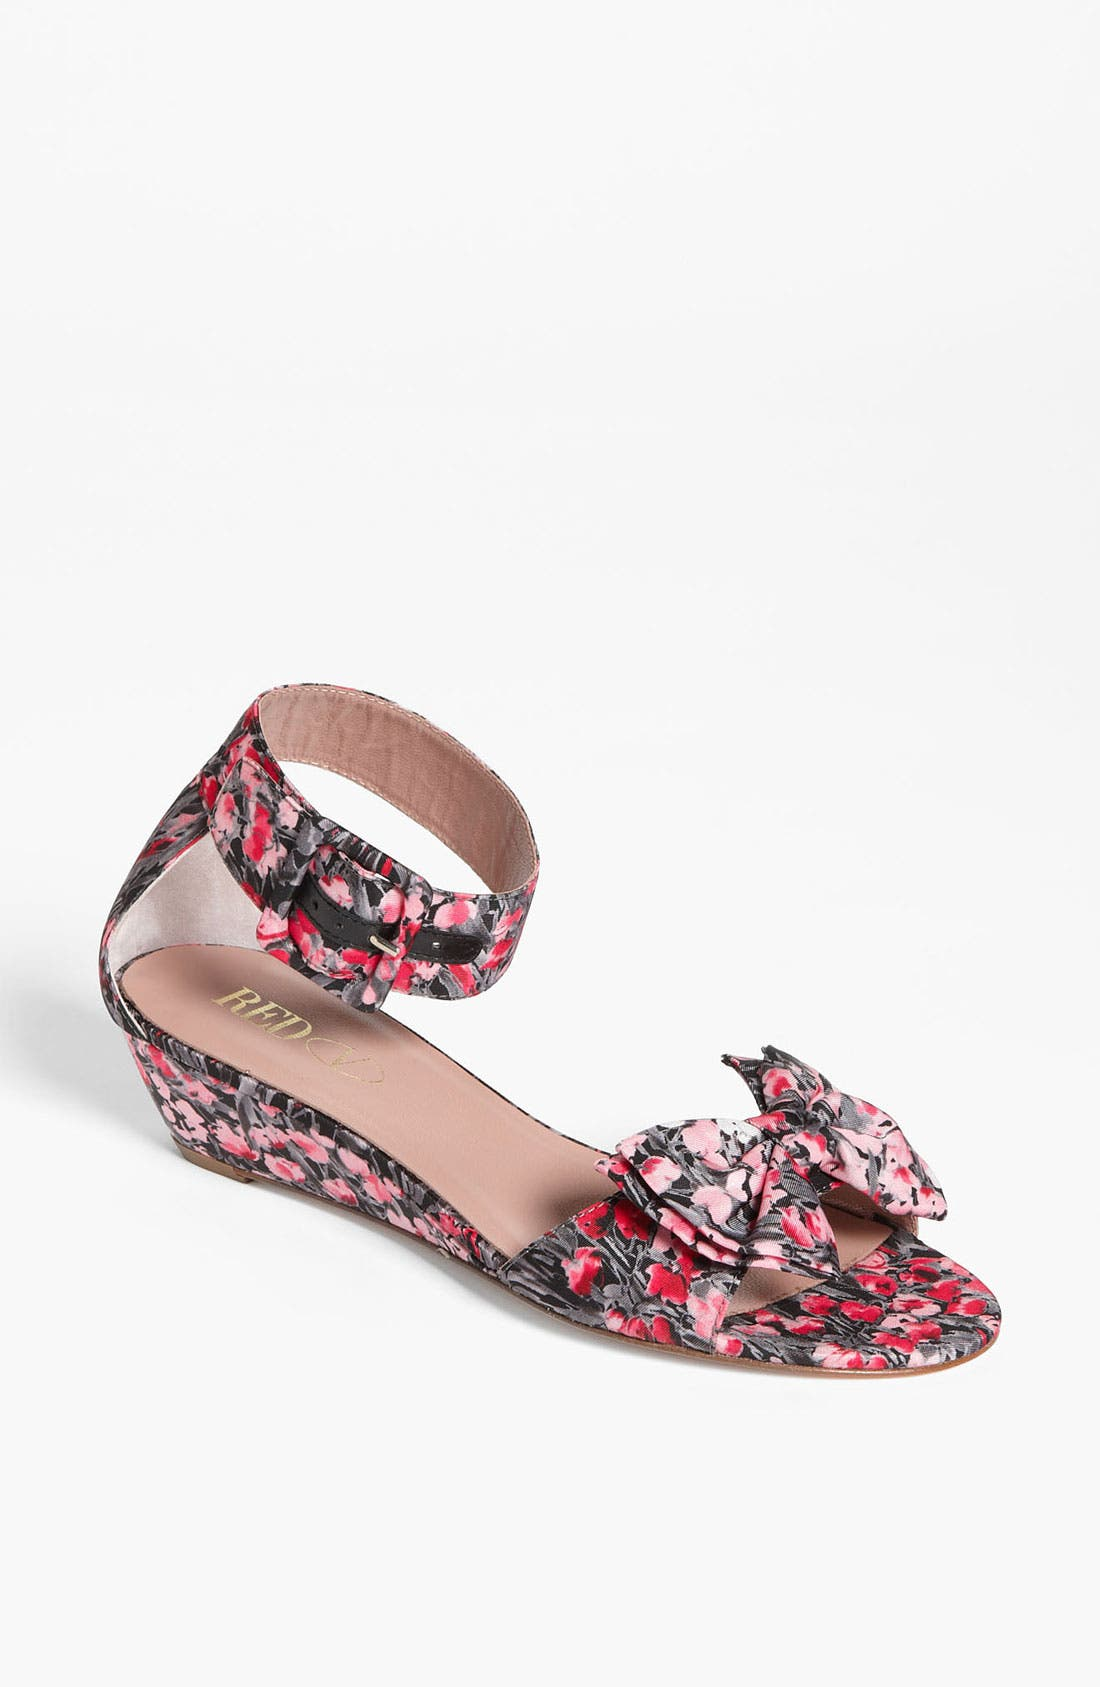 Alternate Image 1 Selected - RED Valentino Demi Wedge Sandal